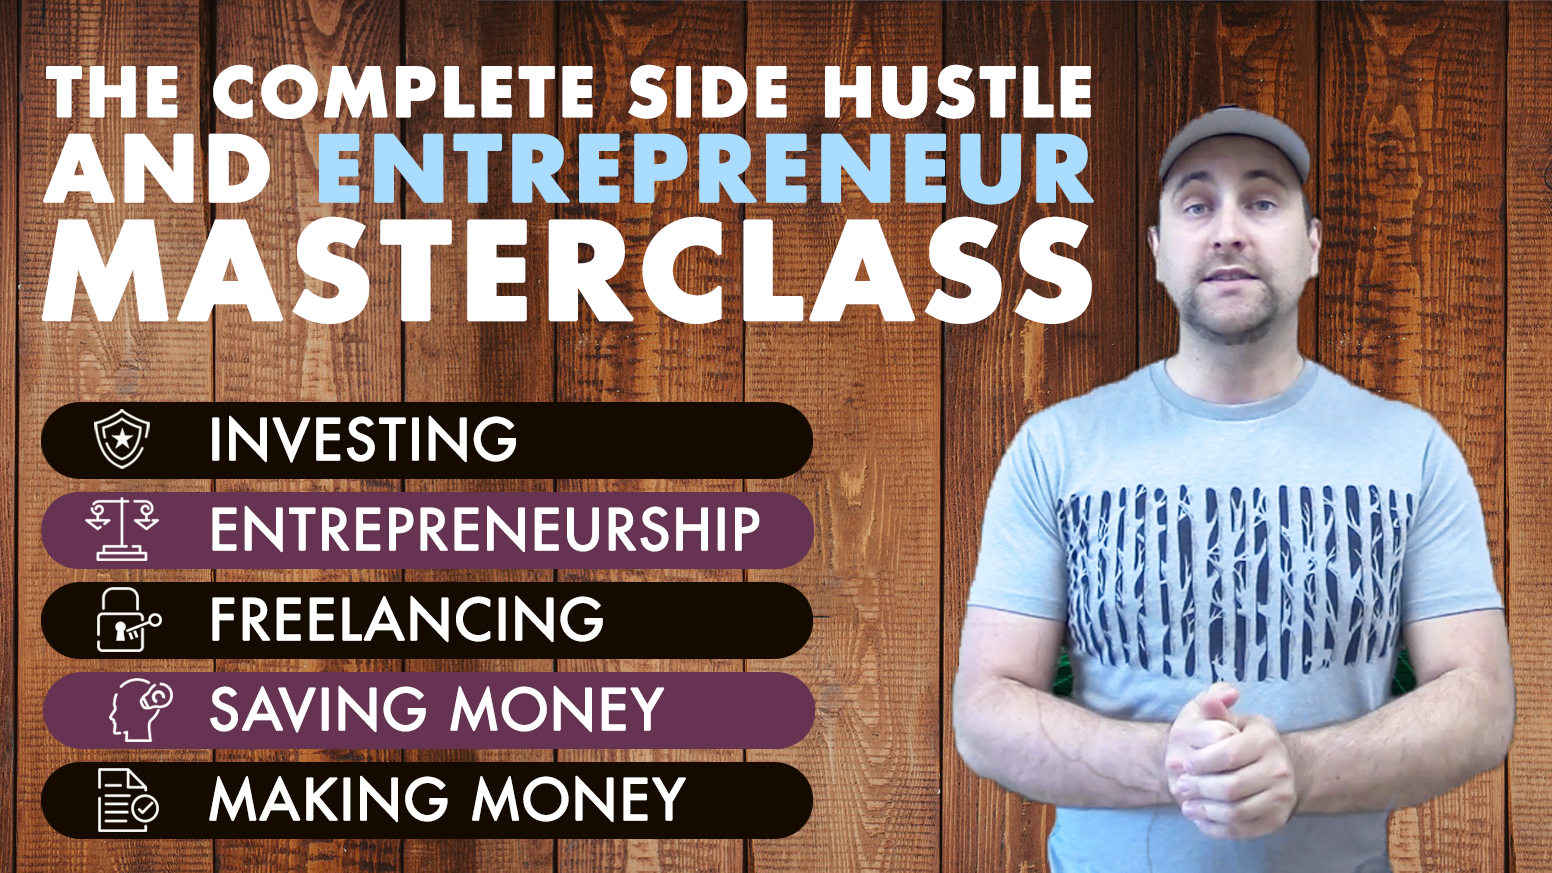 Start a business, invest & be an entrepreneur with an e-degree from instructors featured on Harvard &  Mashable. Make cash from home!